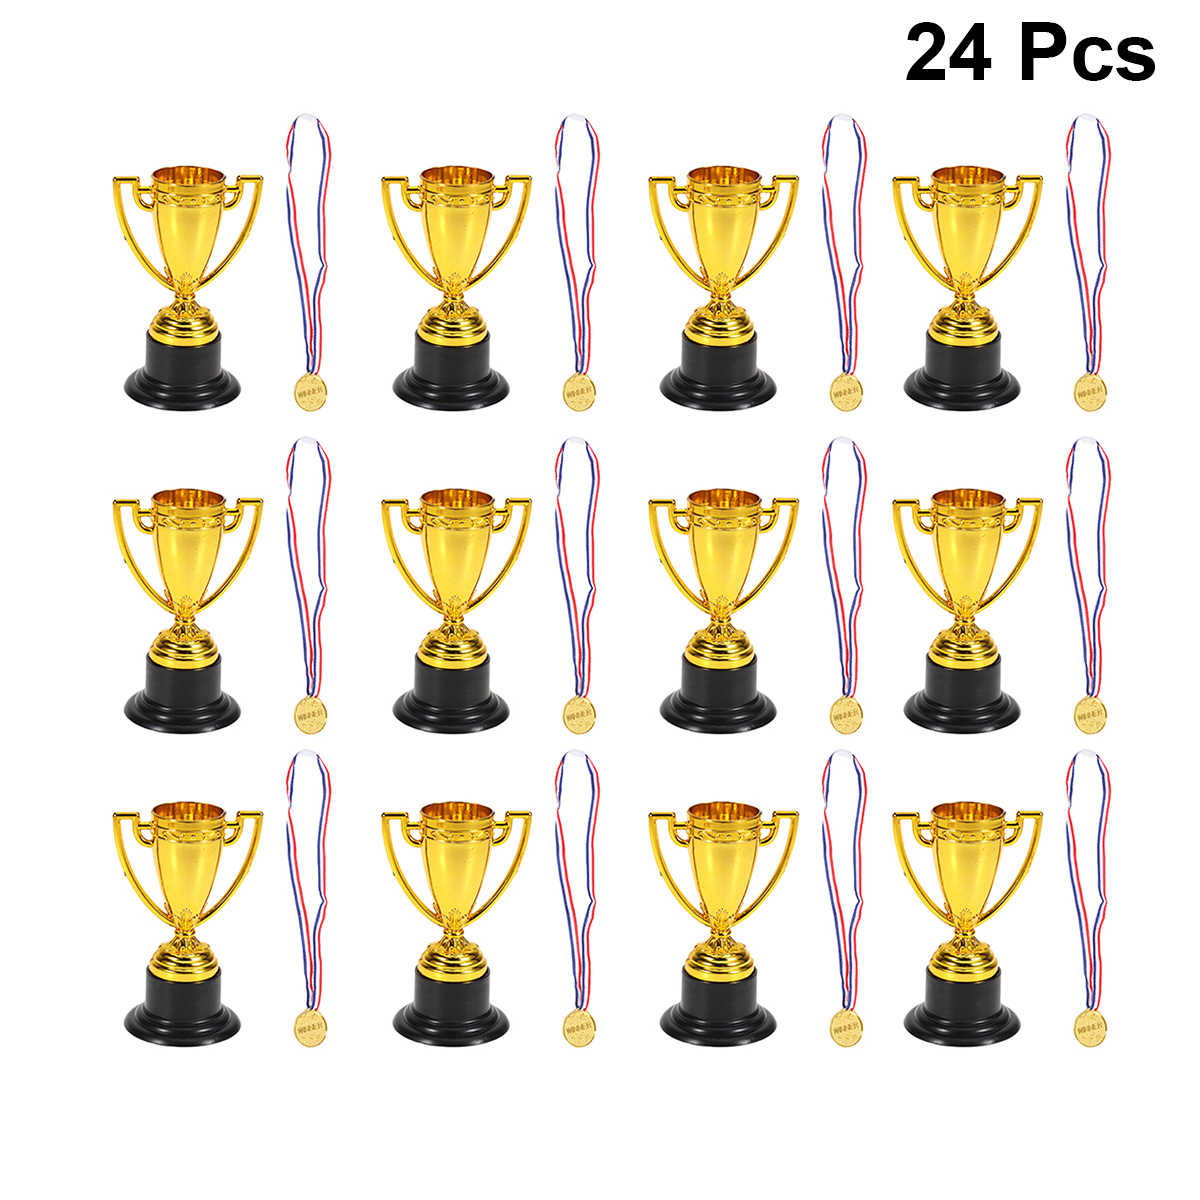 24PCs Childrens Prizes Interest Development Winner Awards Early Learning Plastic Mini Gold Cups Medals for Competition Sports